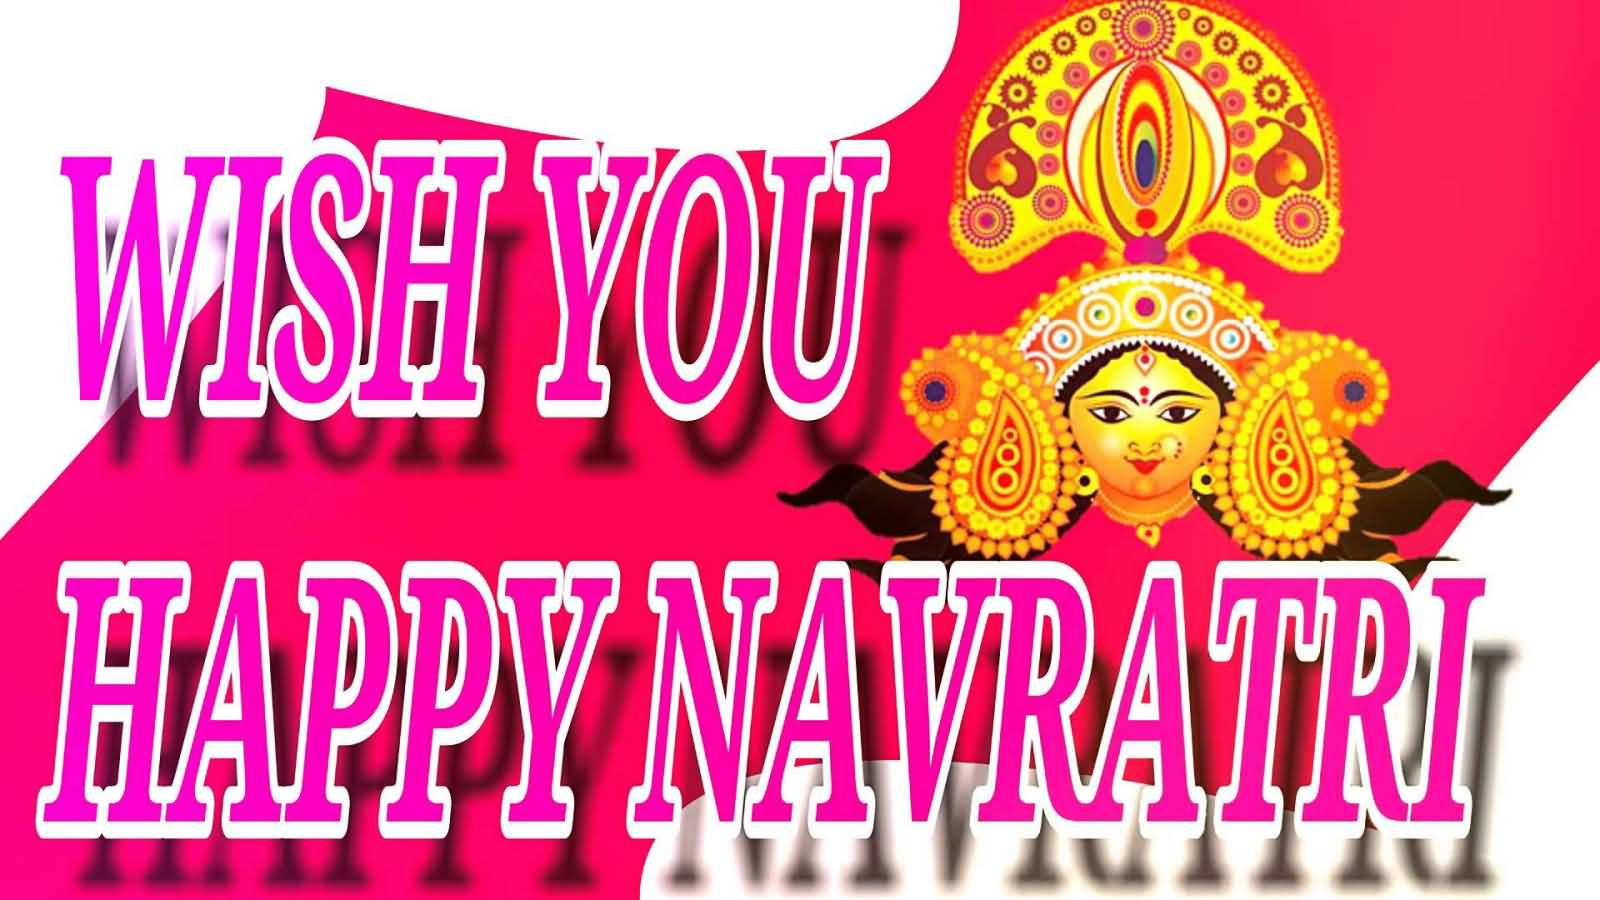 50 Most Amazing Navratri Greeting Pictures On Askideas